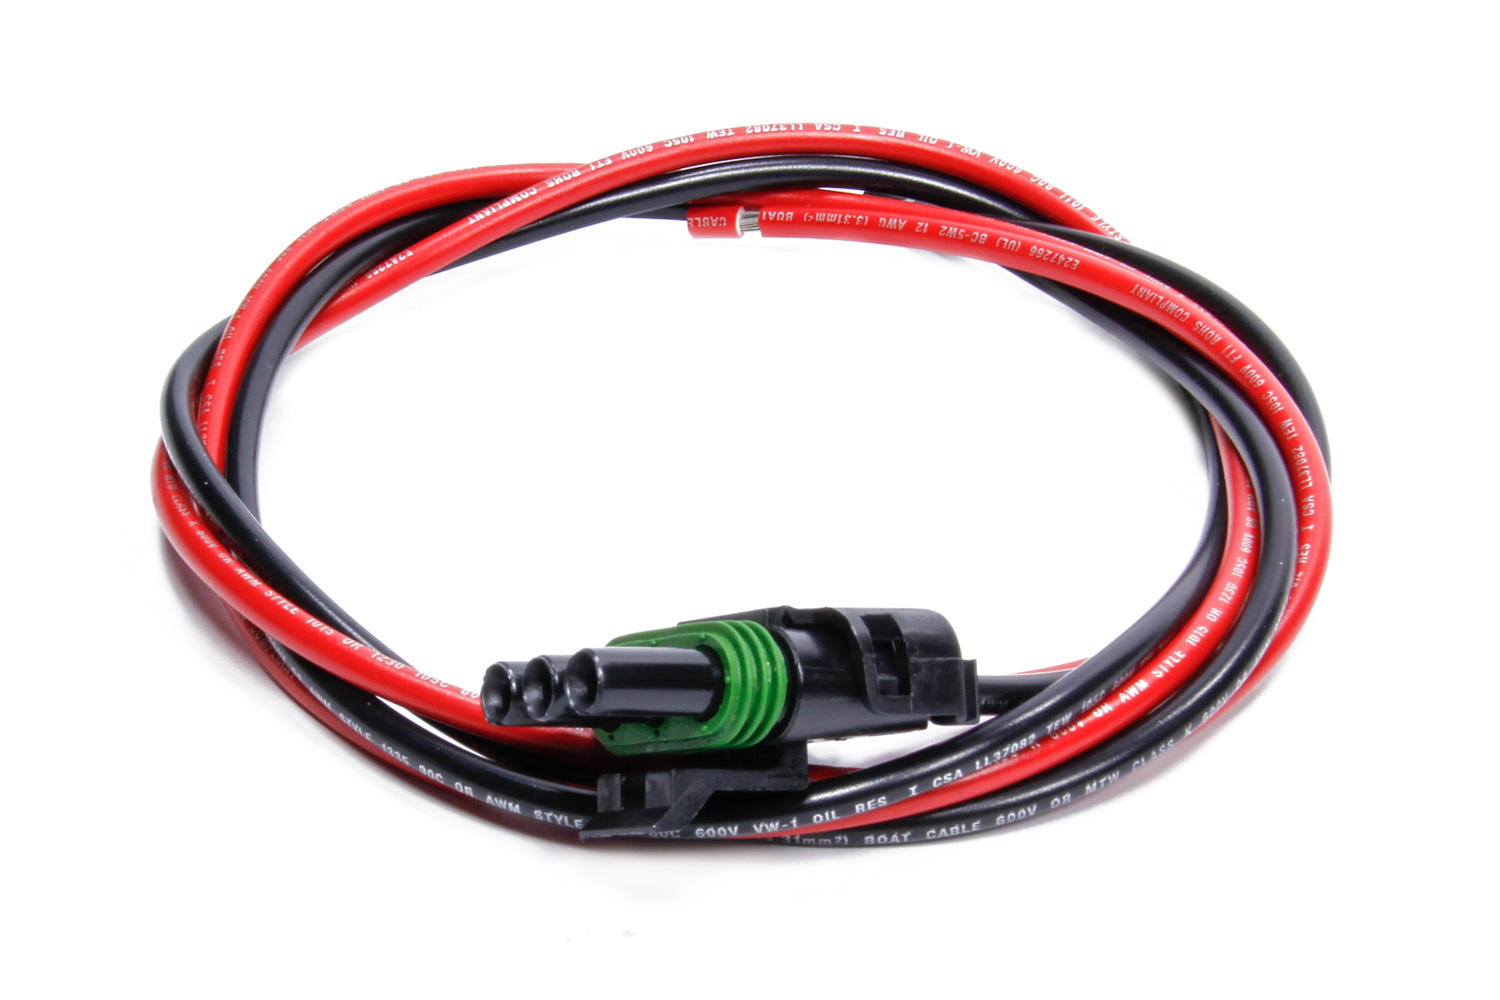 Shop For Fast Electronics Wiring Harnesses Etheridge Race Parts Lt1 To Ls1 Harness Wire Two Pin Battery